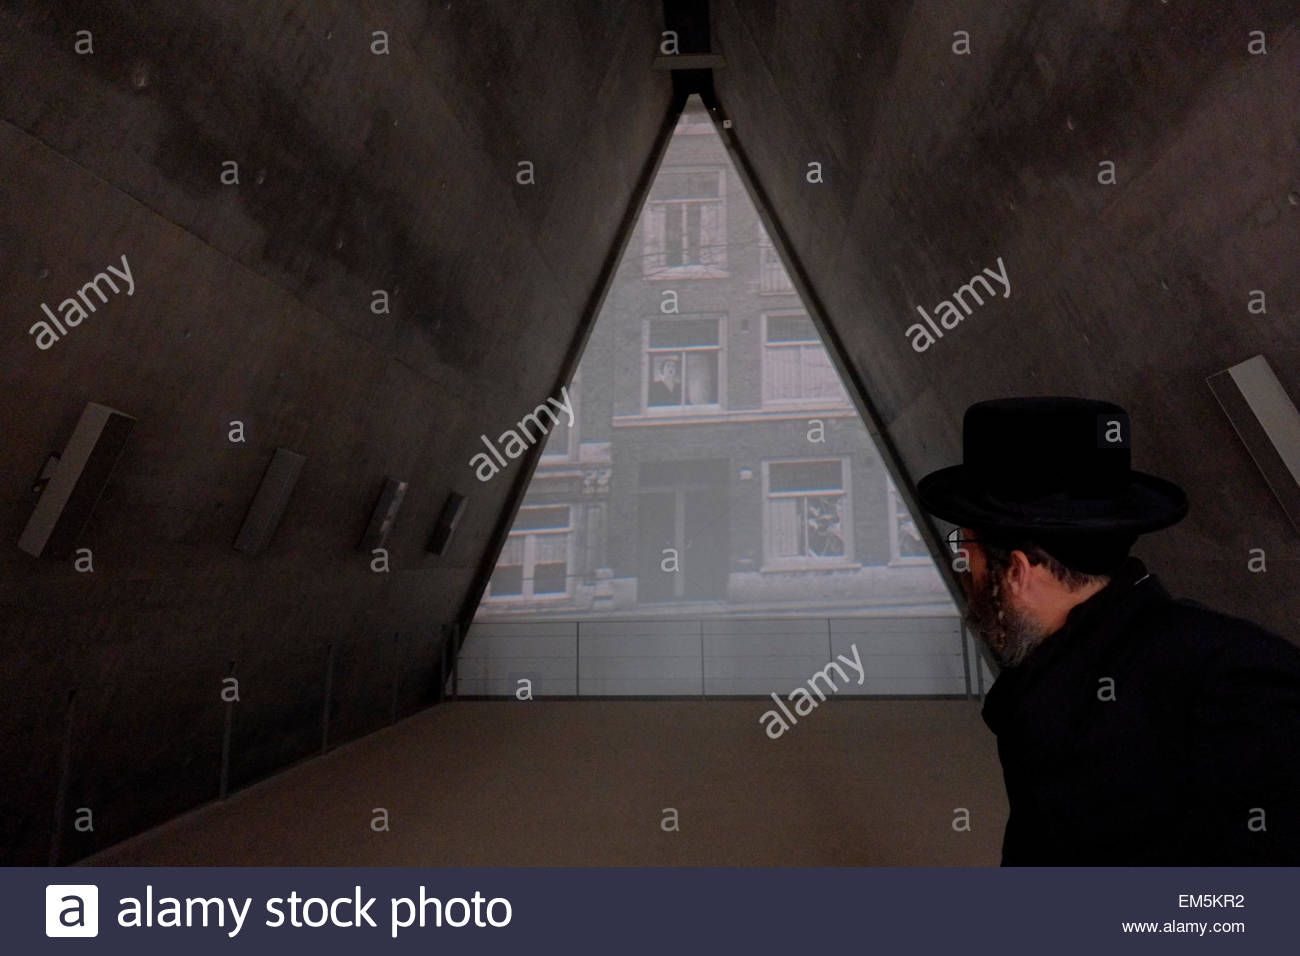 An Orthodox Jew watching archive material at Yad Vashem History Museum for Holocaust in Jerusalem Israel - Stock Image